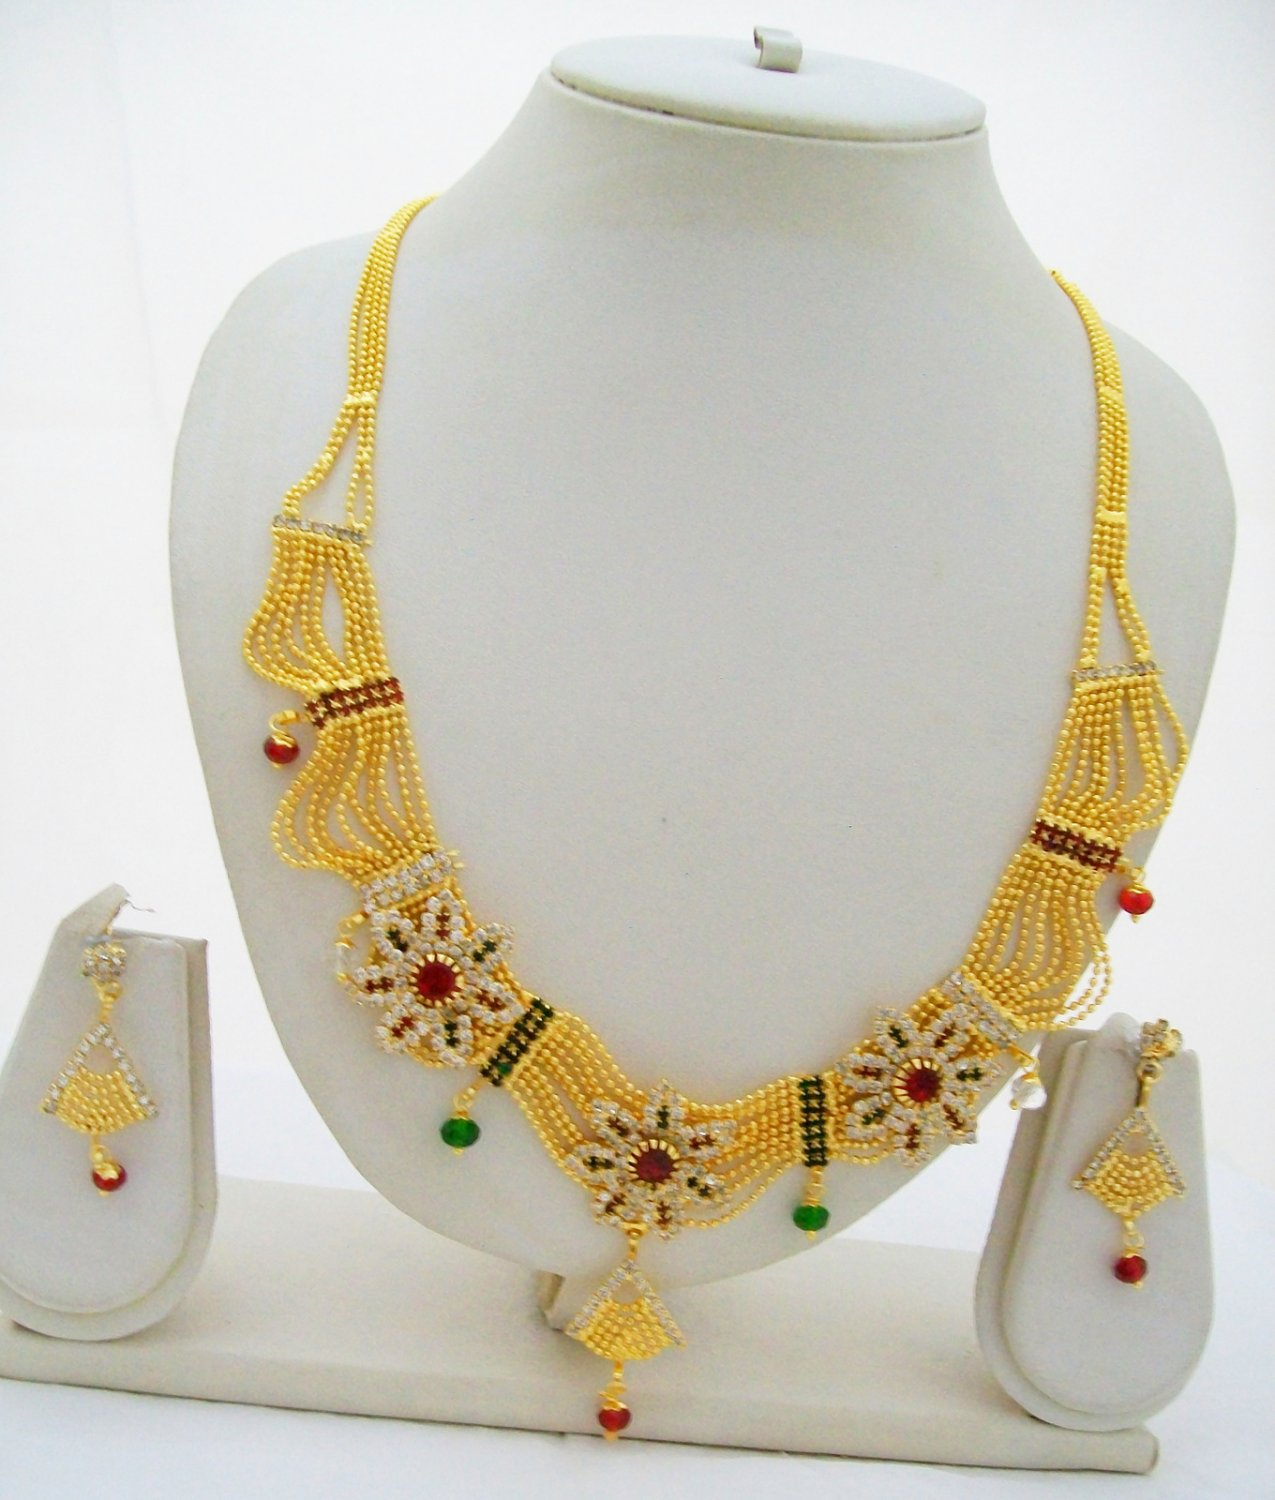 Beads Chain Gold Plated Necklace Multi Strand Layer Flower Jewelry